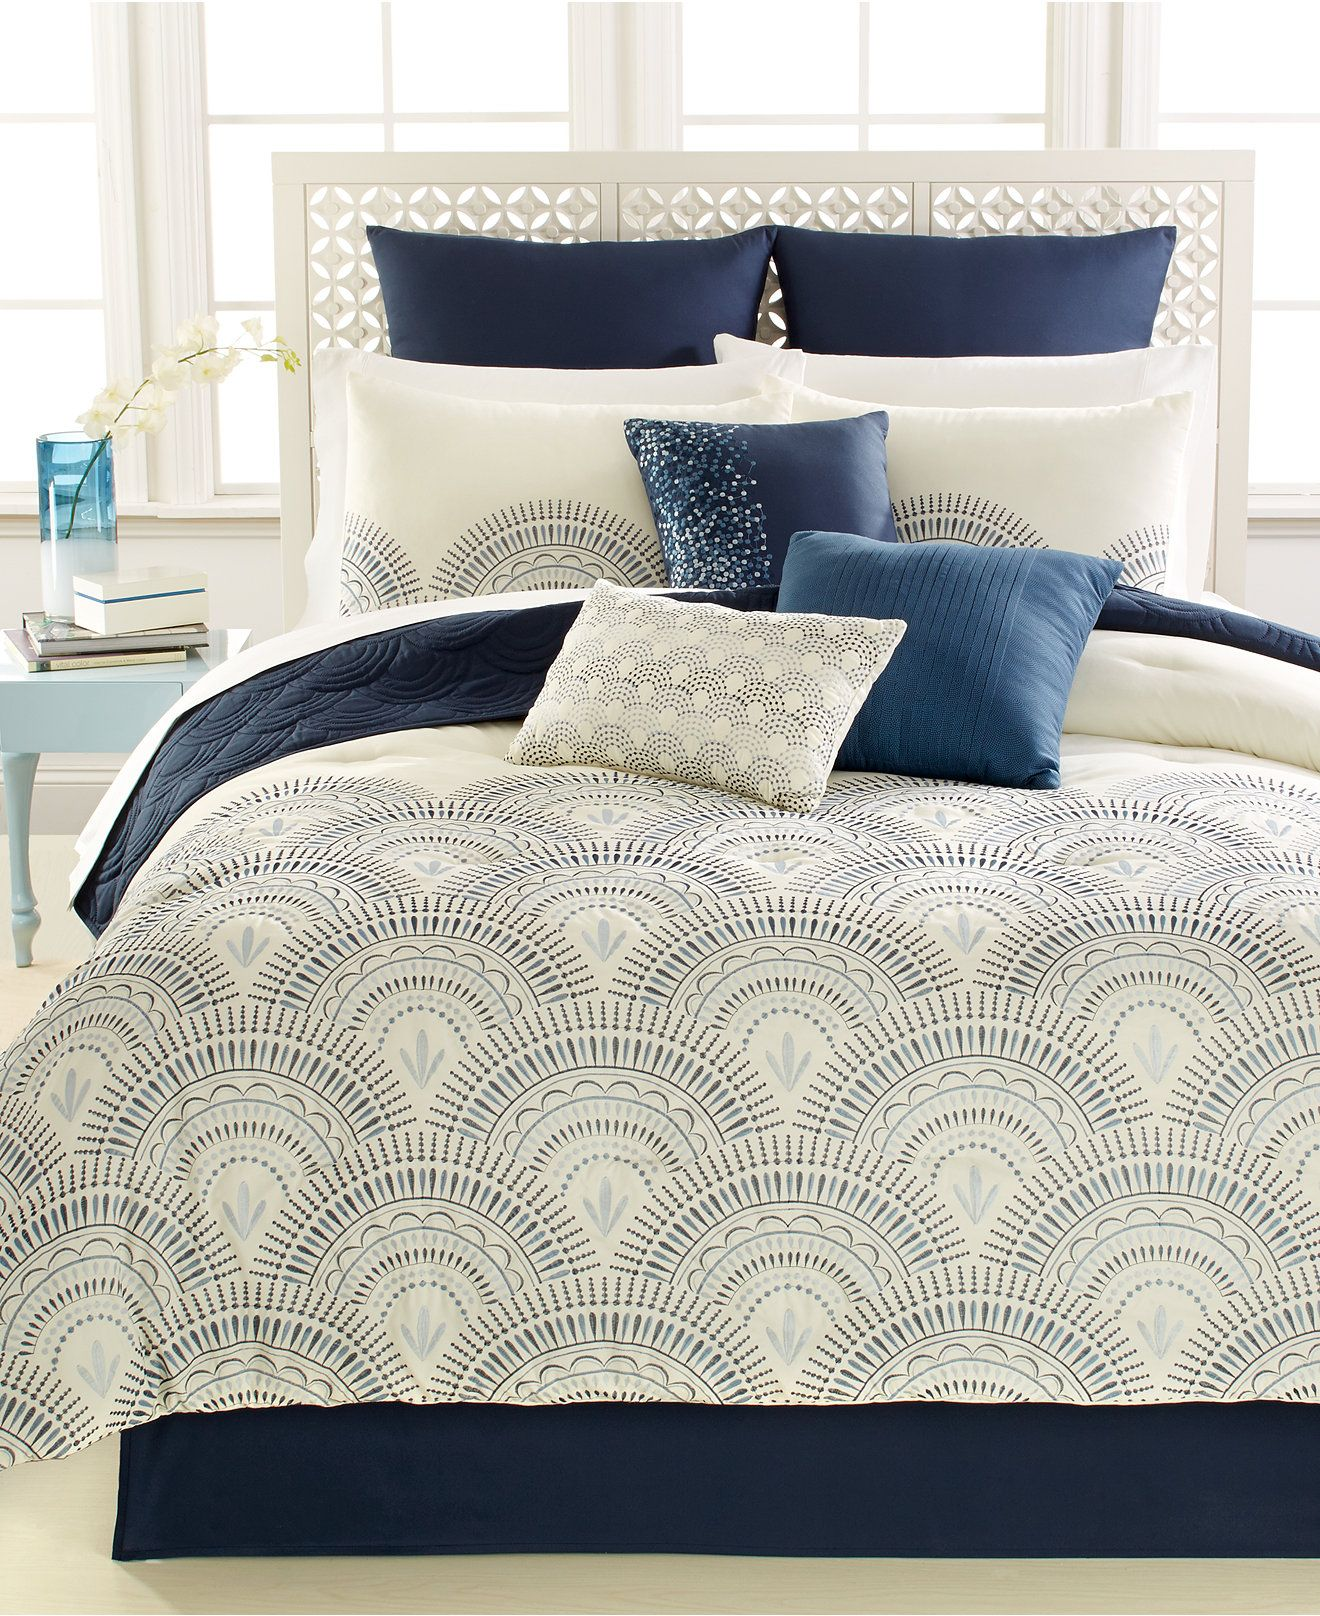 Reese 10 Pc California King Comforter Set